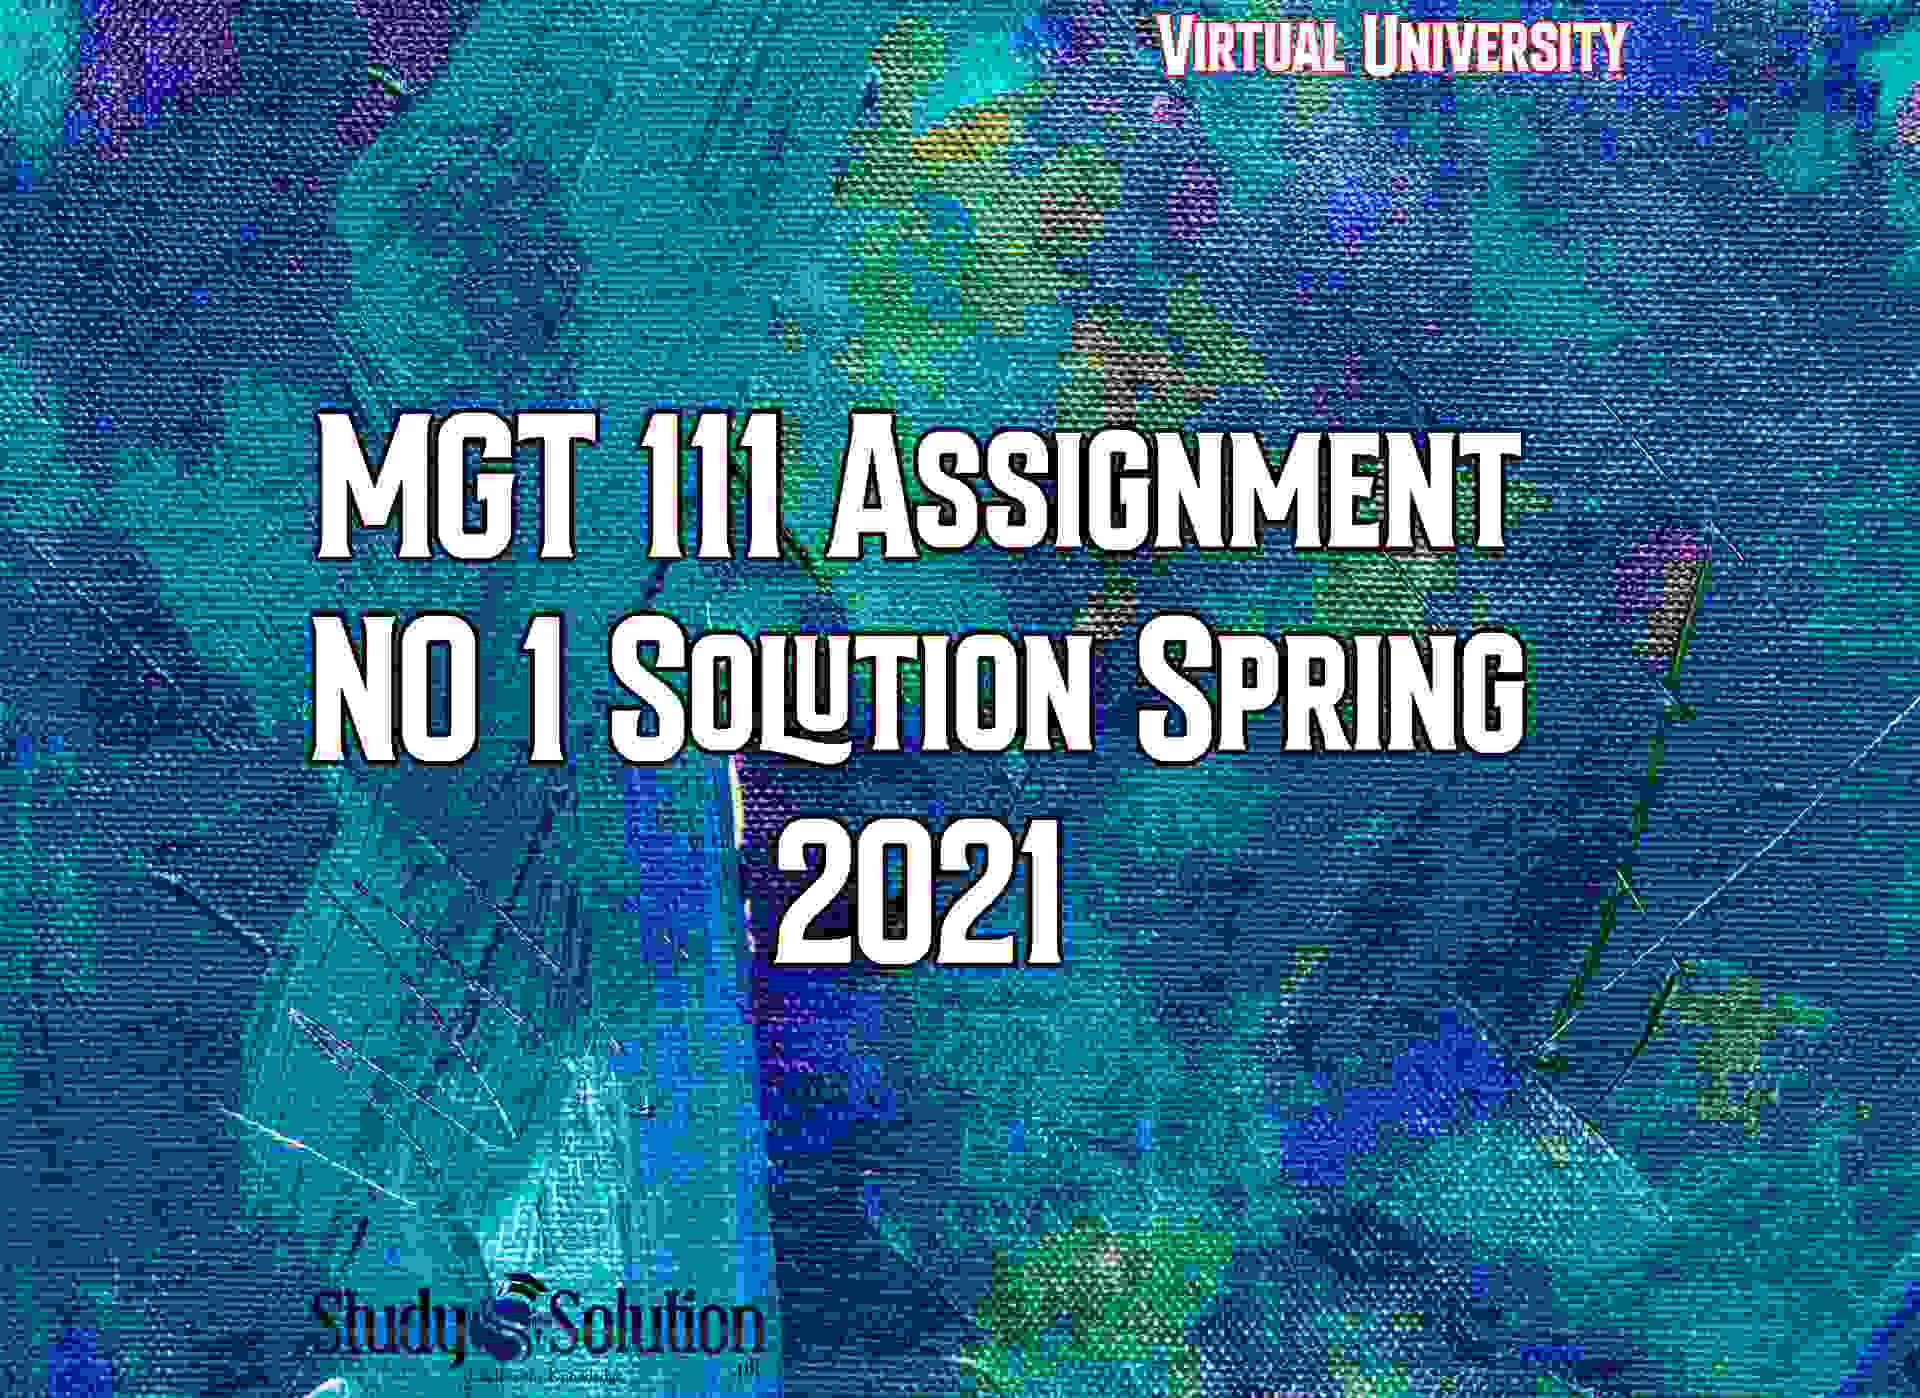 MGT 111 Assignment NO 1 Solution Spring 2021